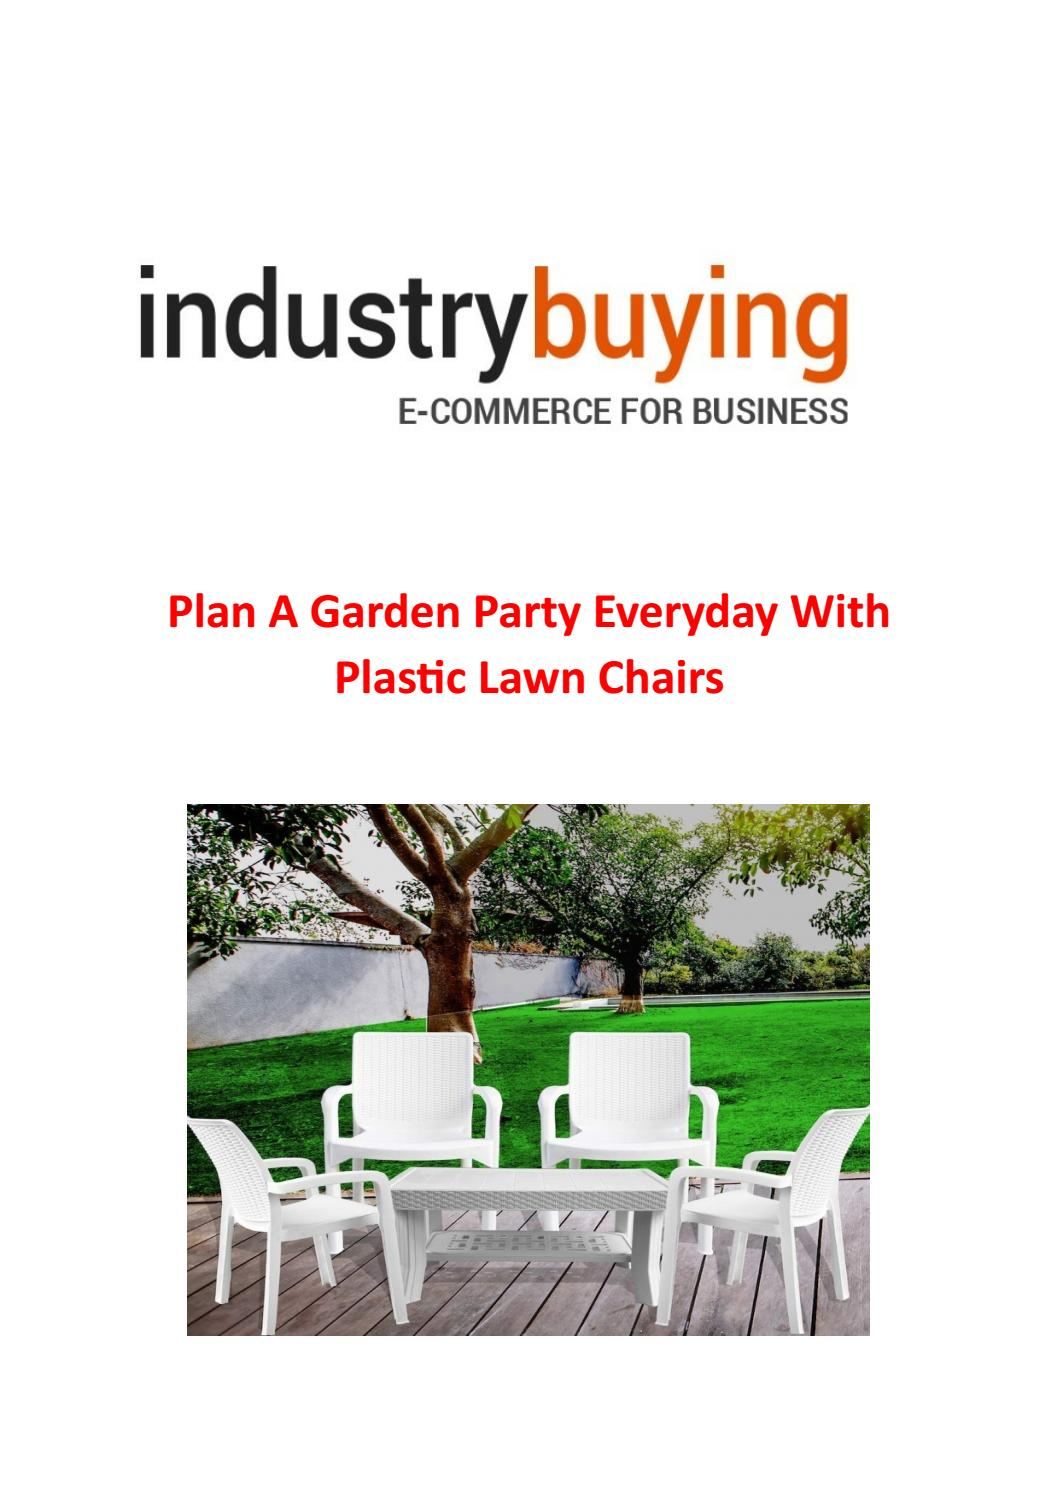 Plan A Garden Party Everyday With Plastic Lawn Chairs By Industrybuying Issuu